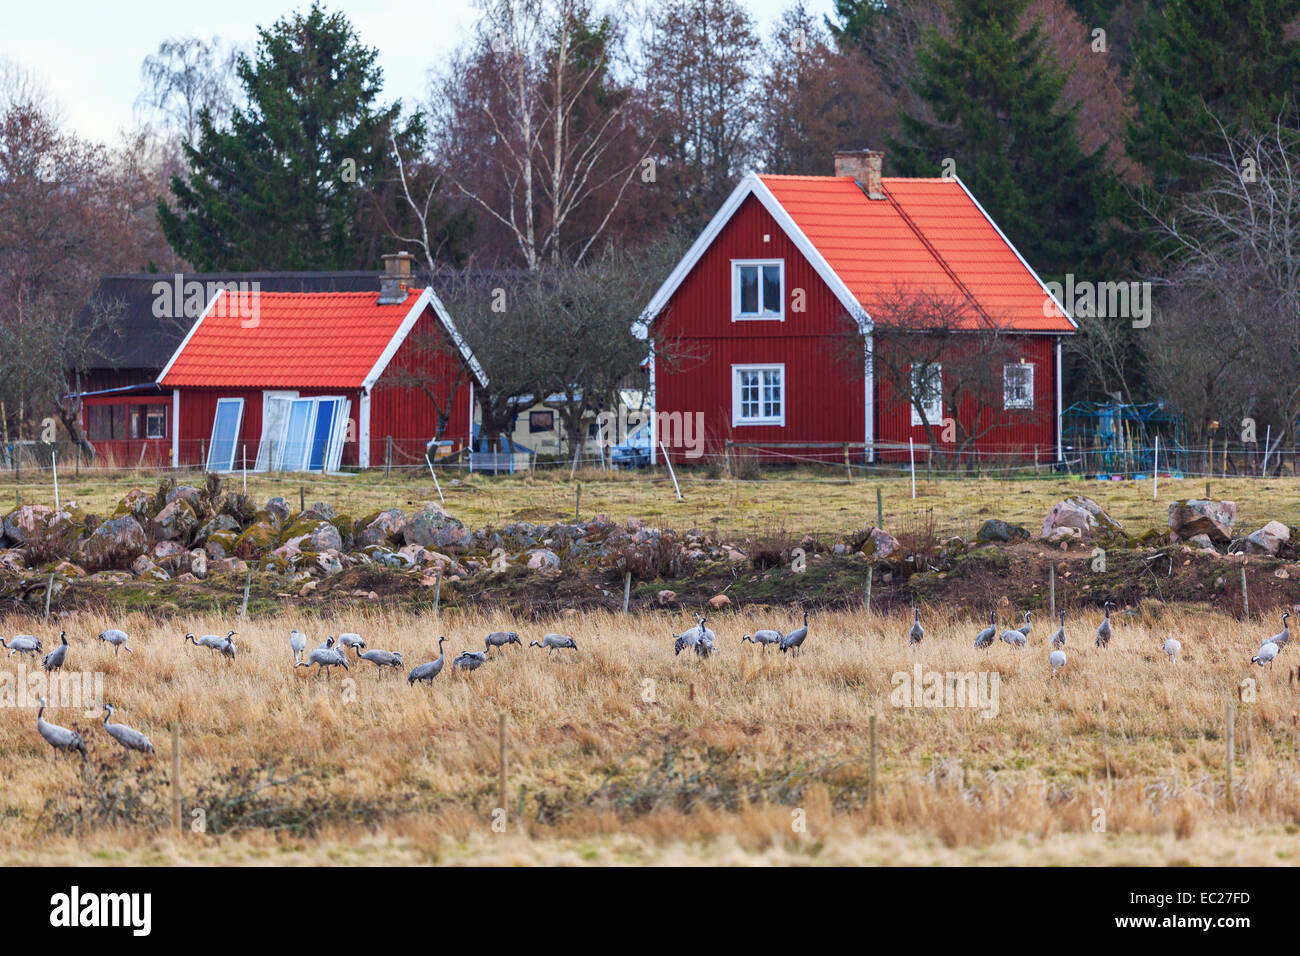 Flock of cranes in the field at the farm - Stock Image